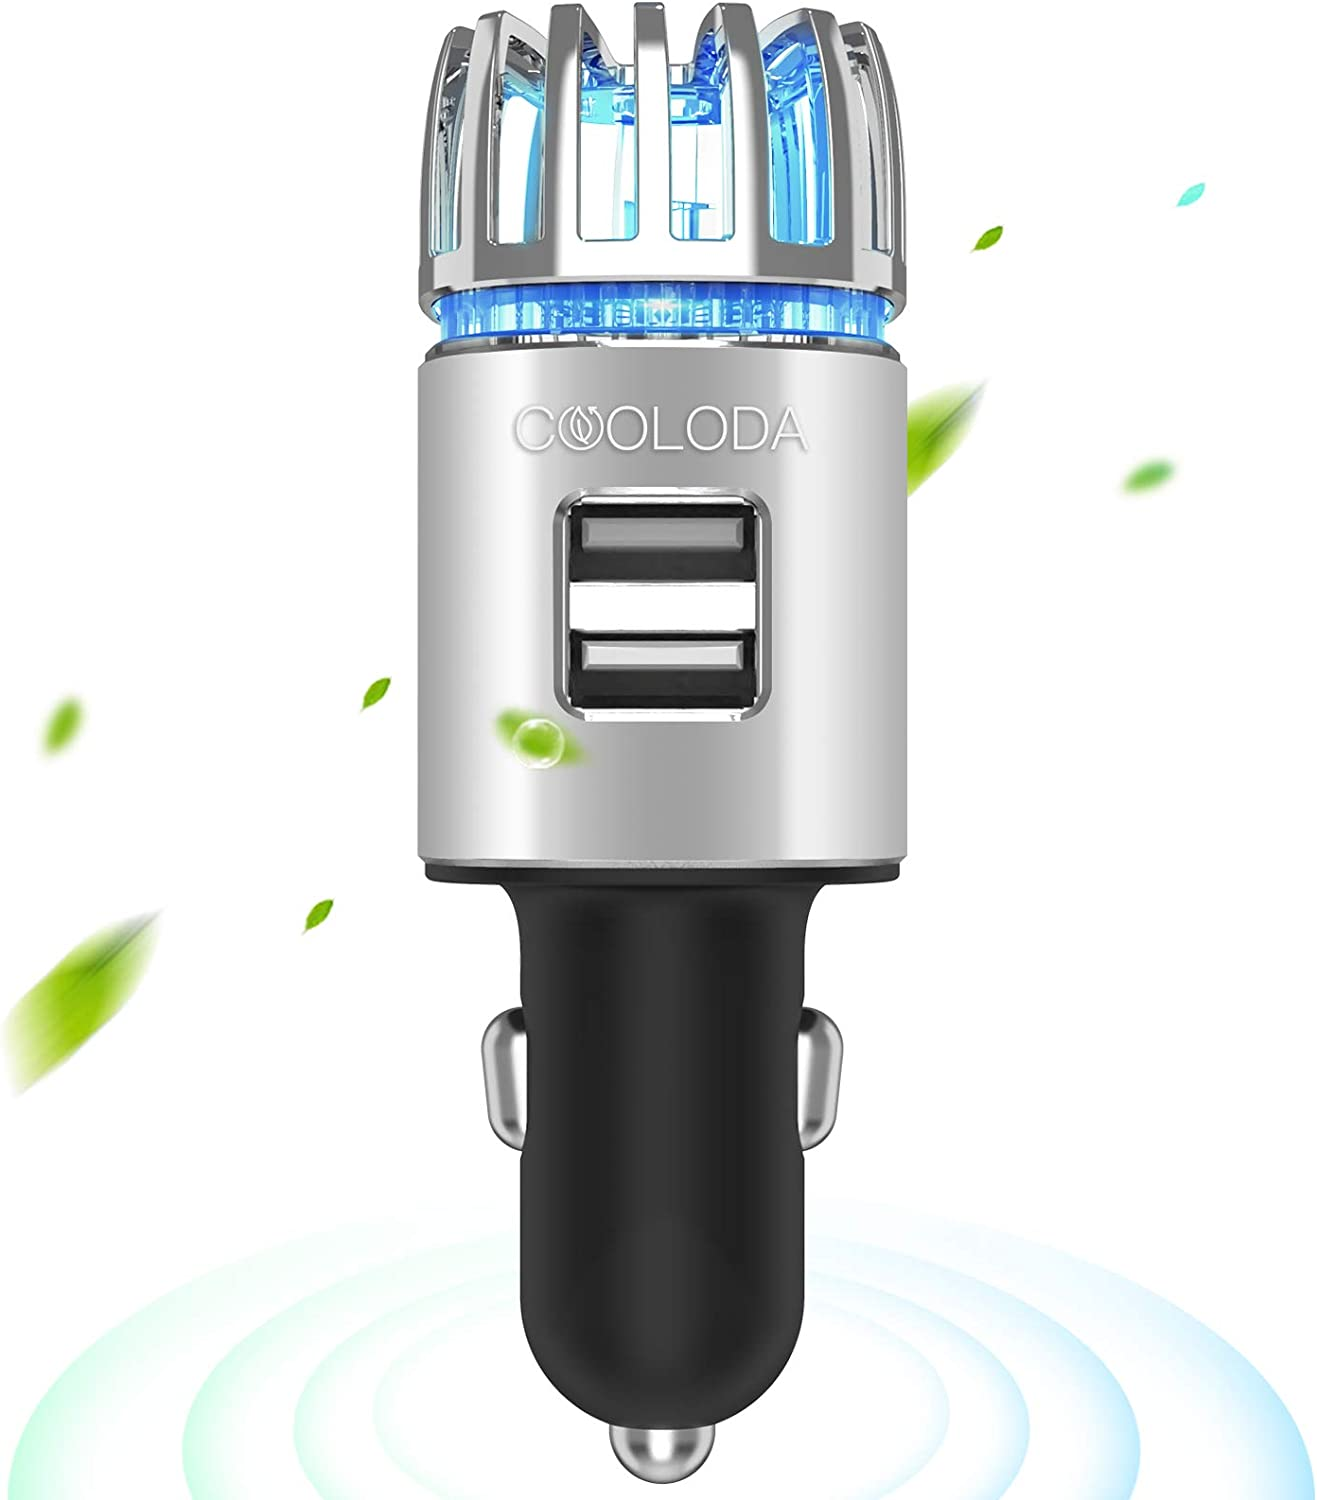 Car Air Purifiers, COOLODA Car Air Purifier Ionizer with Dual USB Charger 12V Plug in Air Fresheners Removes Cigarette Smoke, Pet and Food Odor for Car, Silver